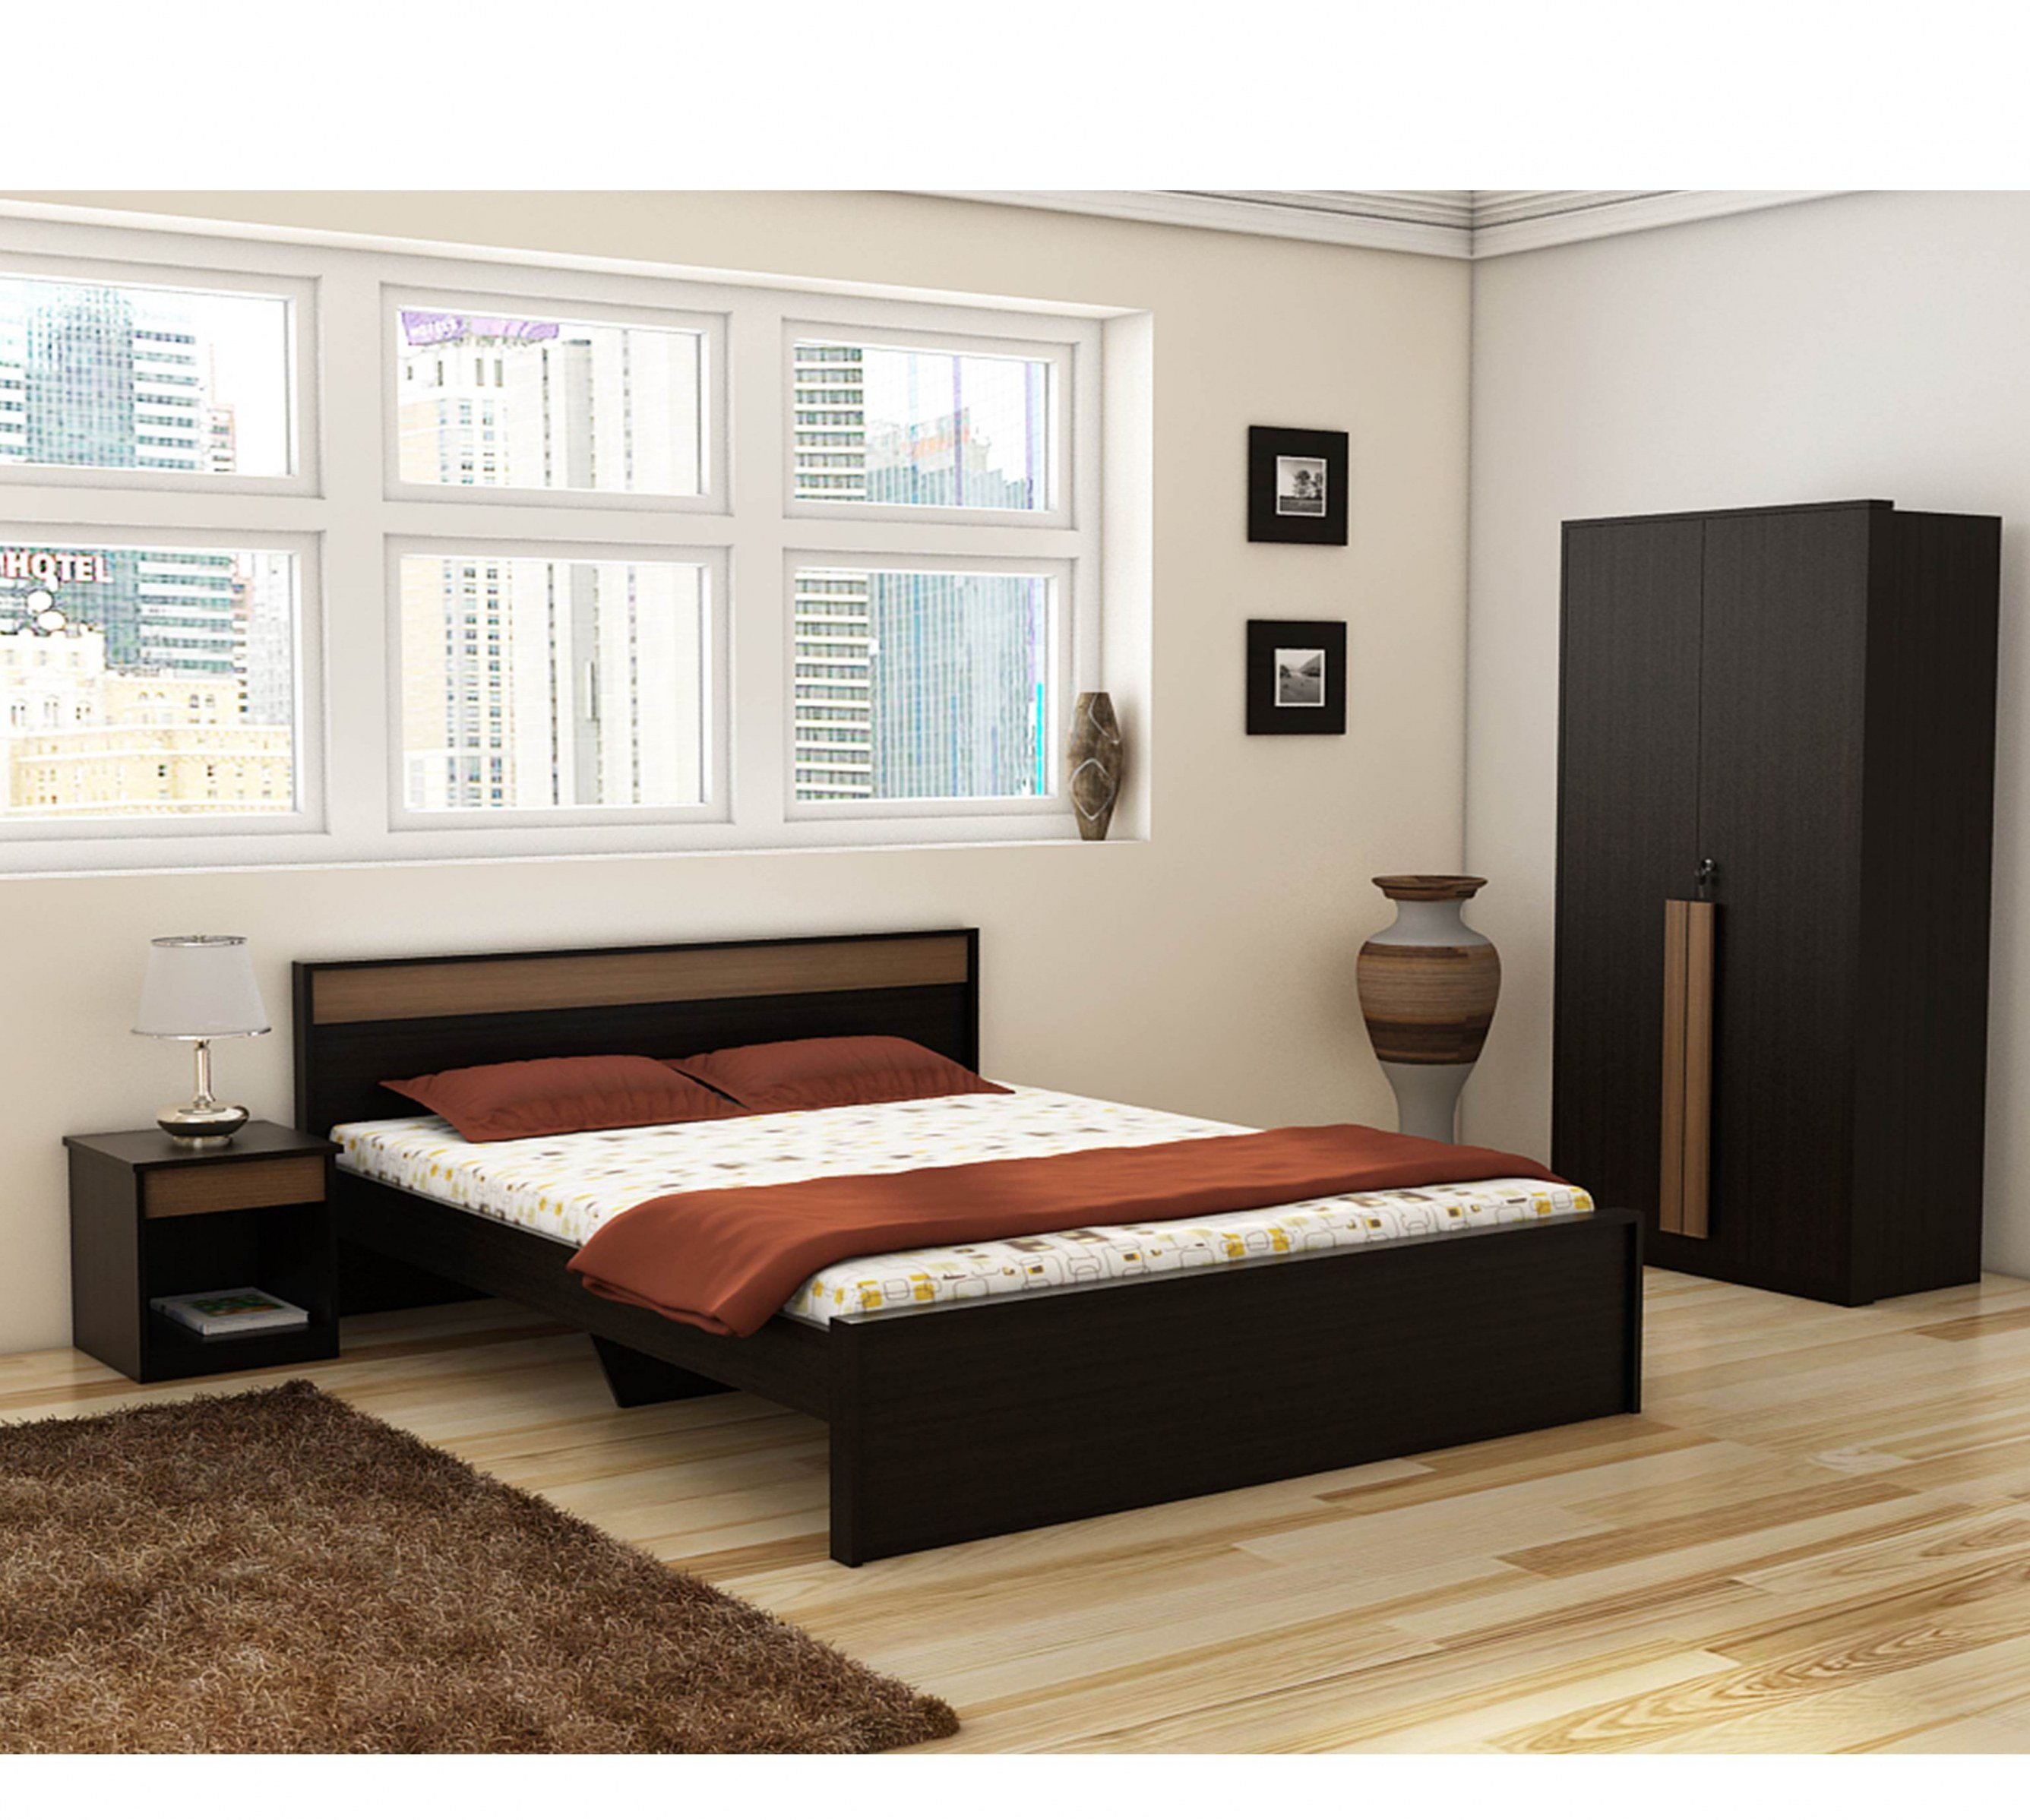 White Contemporary Bedroom Furniture Inspirational Low Beds Ikea White Bedroom Furniture Sets Ikea White Hemnes